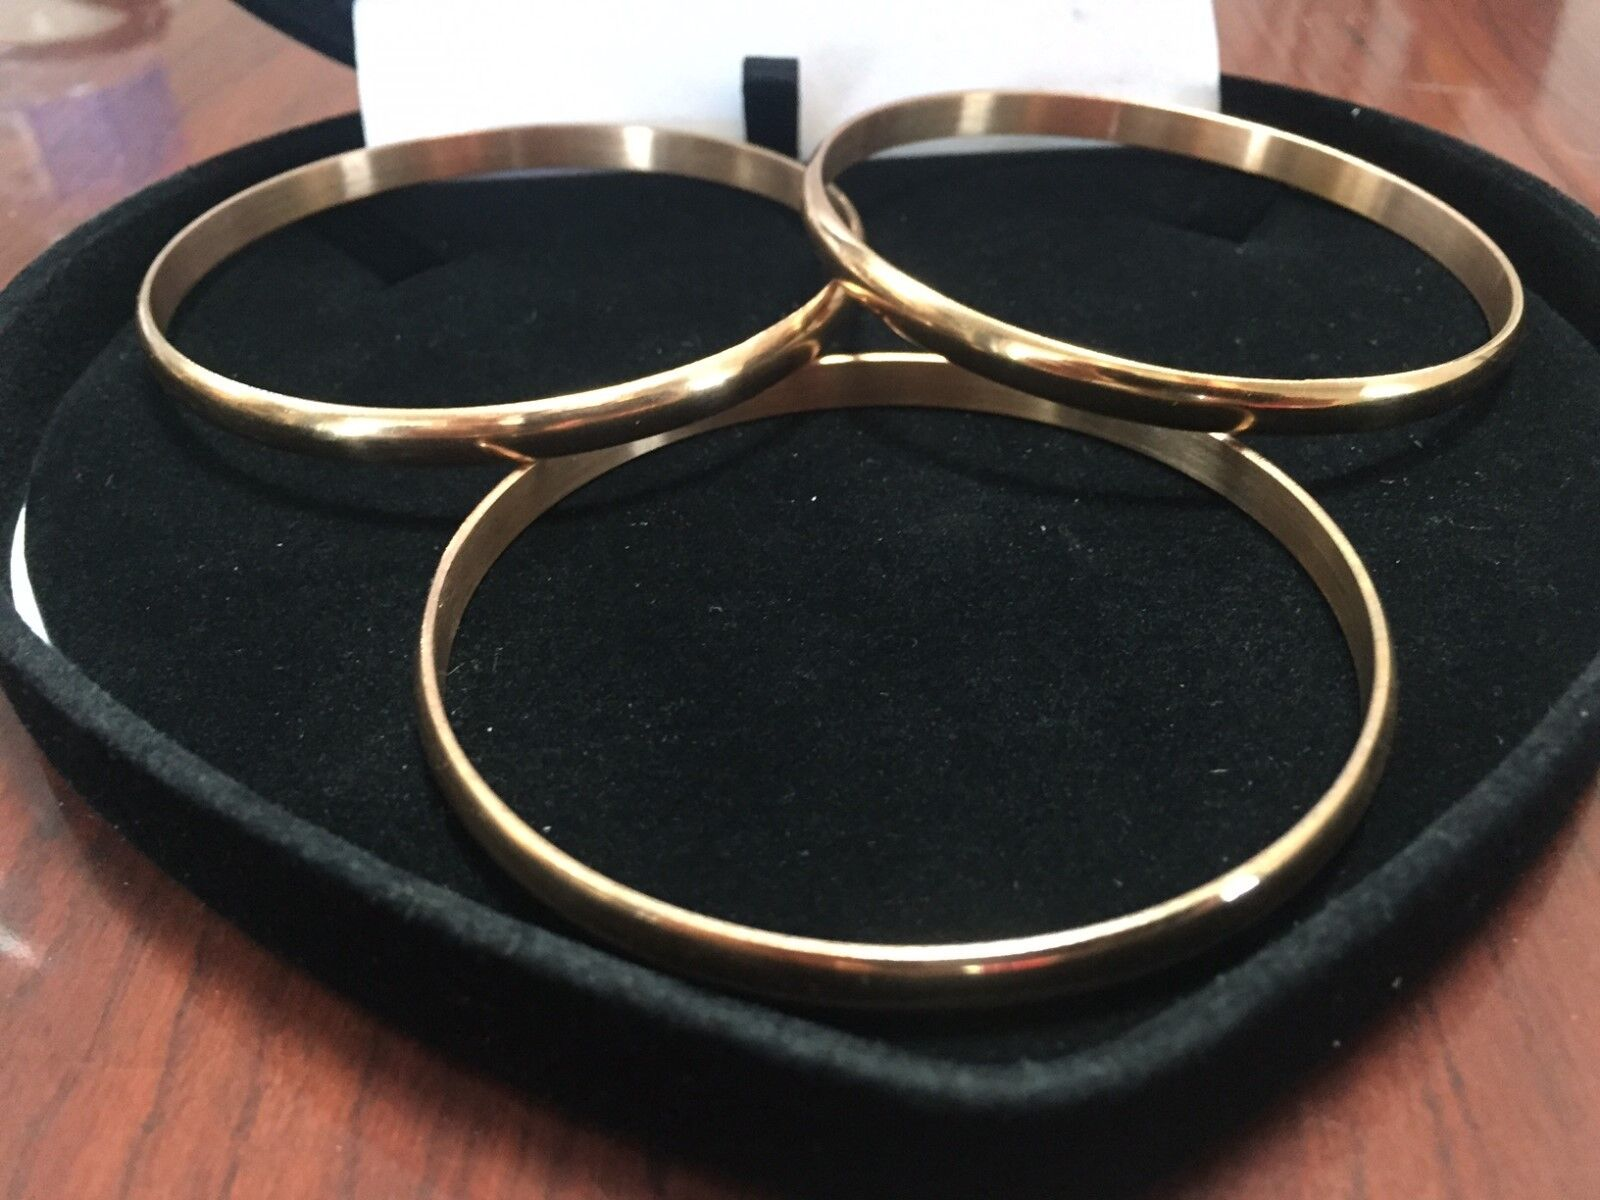 WOMENS 14K & STS*  YELLOW GOLD CUFF BANGLE BRACELET SET OF 3 SZ 8 INCH  + BONUS! Без бренда